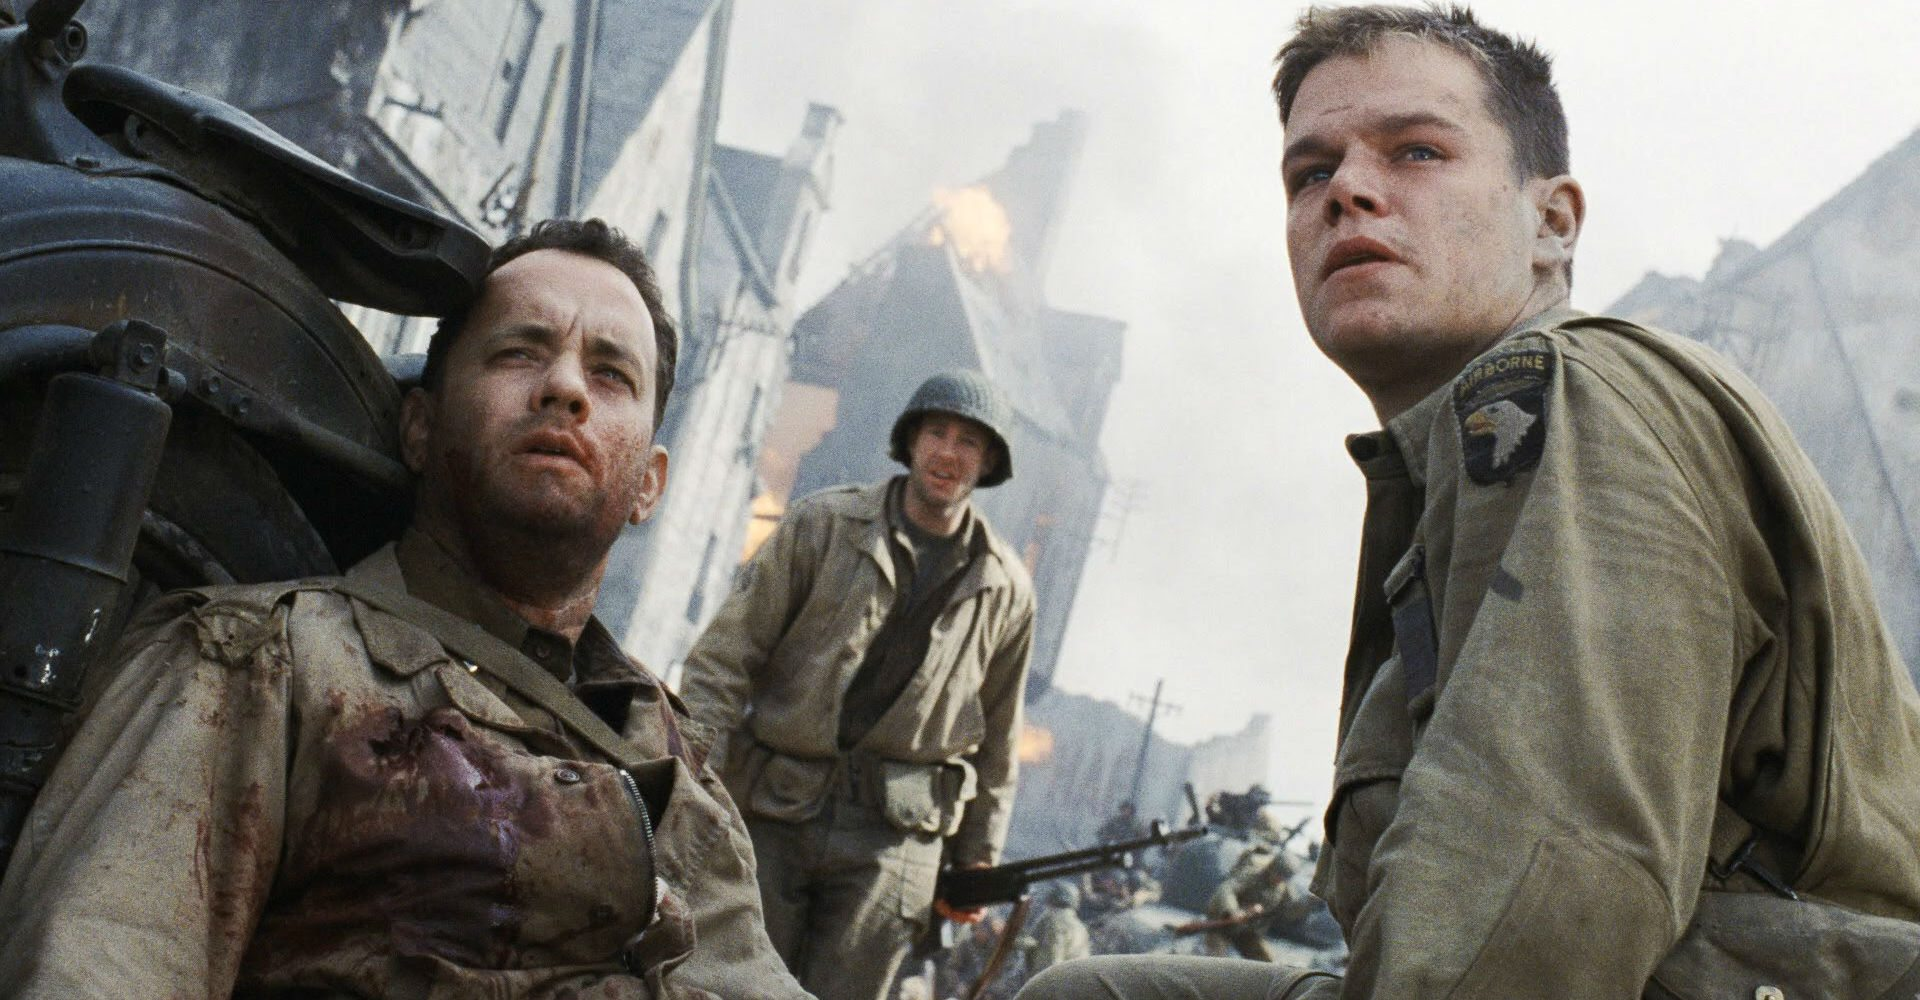 Matt-Damon-Saving-Private-Ryan.jpg